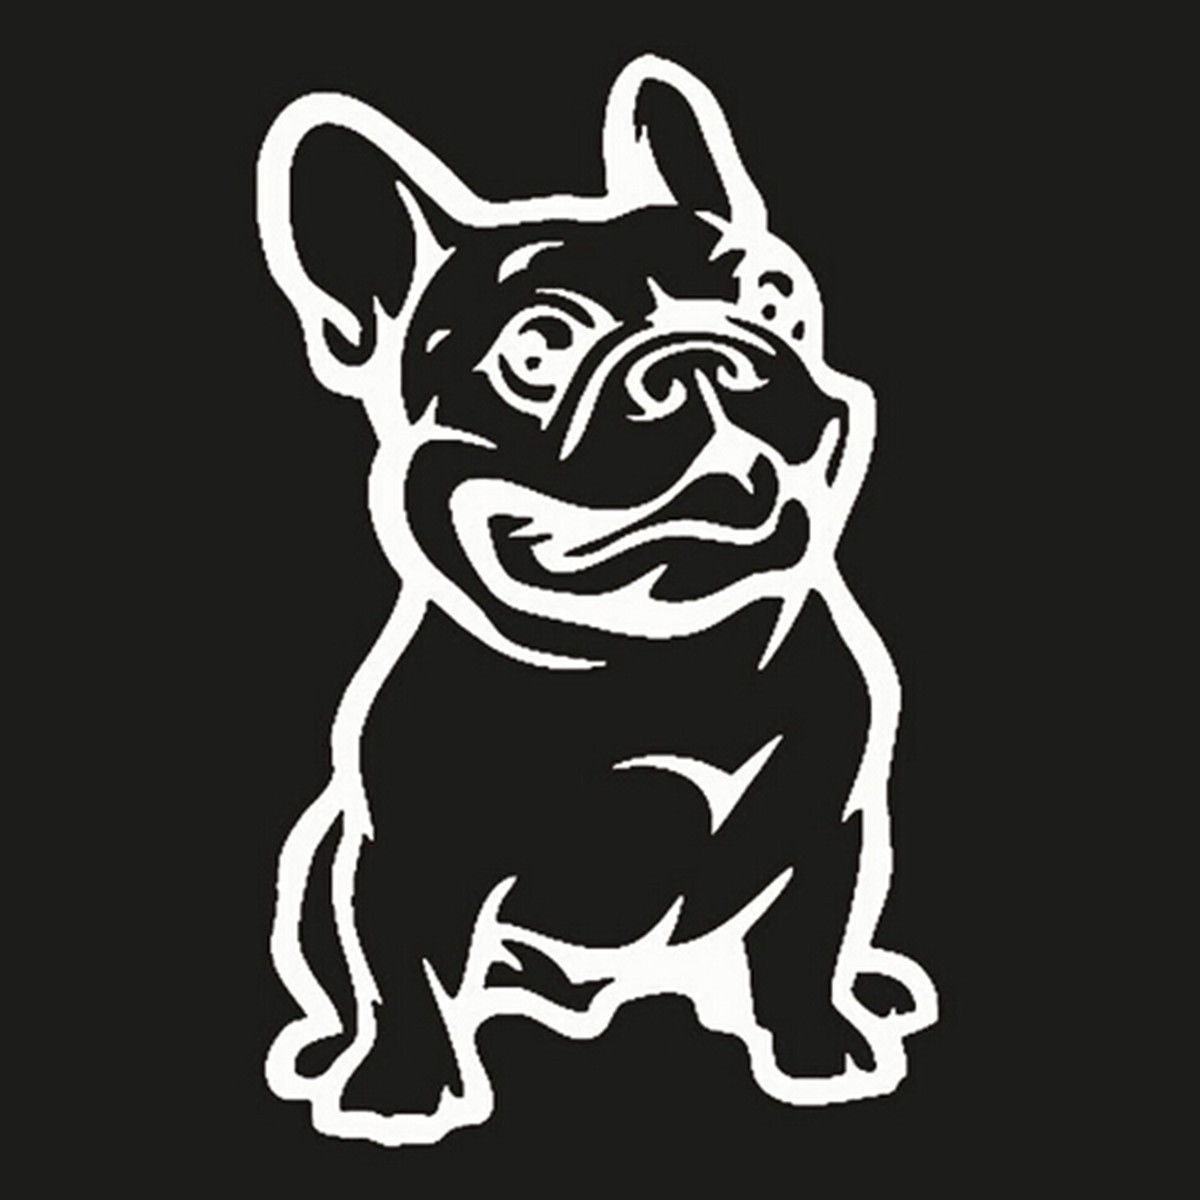 Car sticker vinyl - Strong Adhesive Stickers French Bulldog Dog Car Sticker Vinyl Cars Decal China Mainland